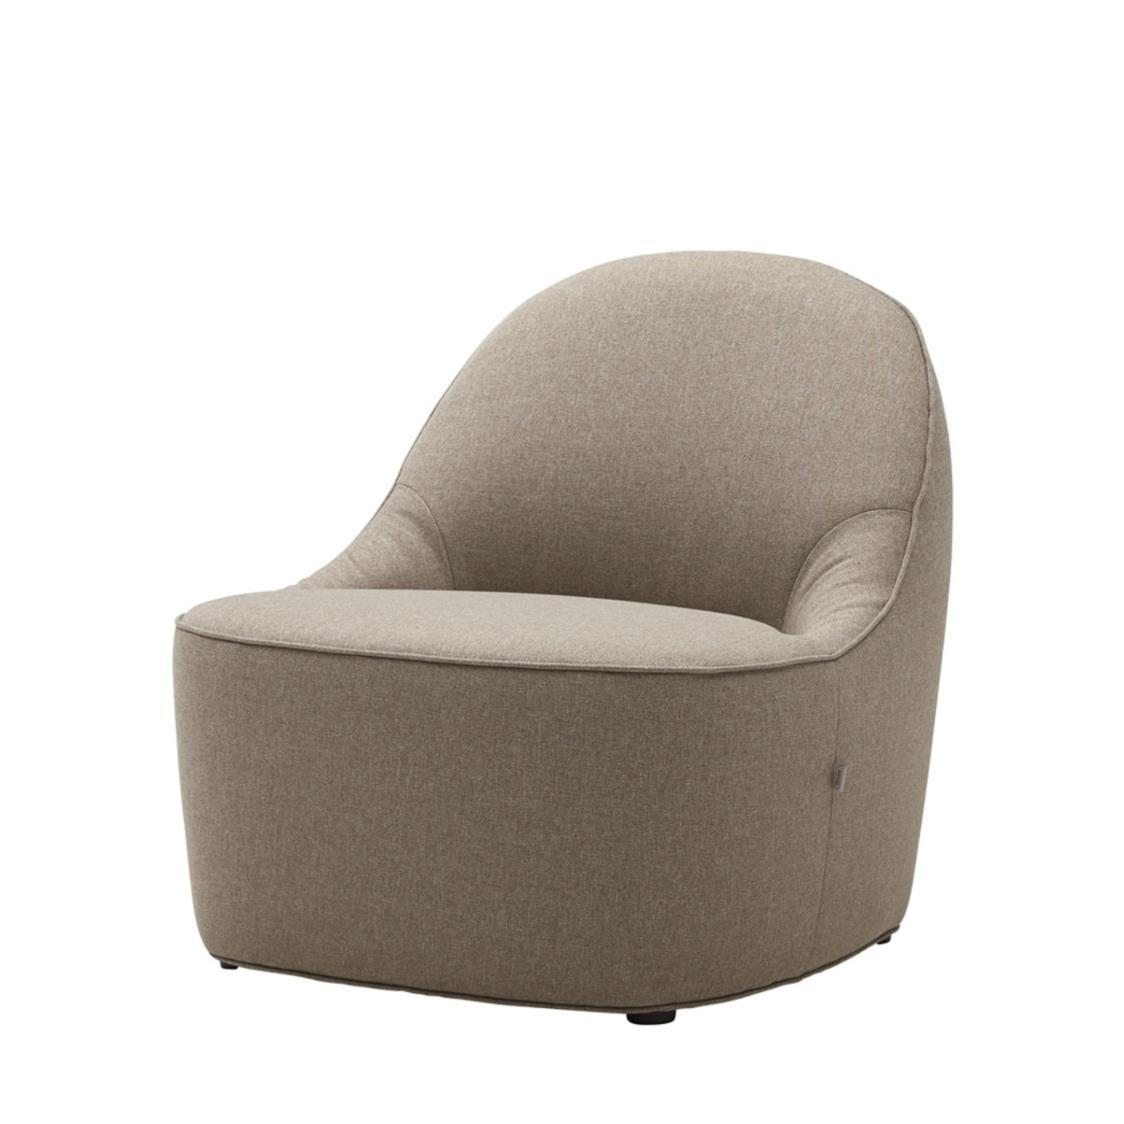 Iloom Stone Chair 451 Cork Brown